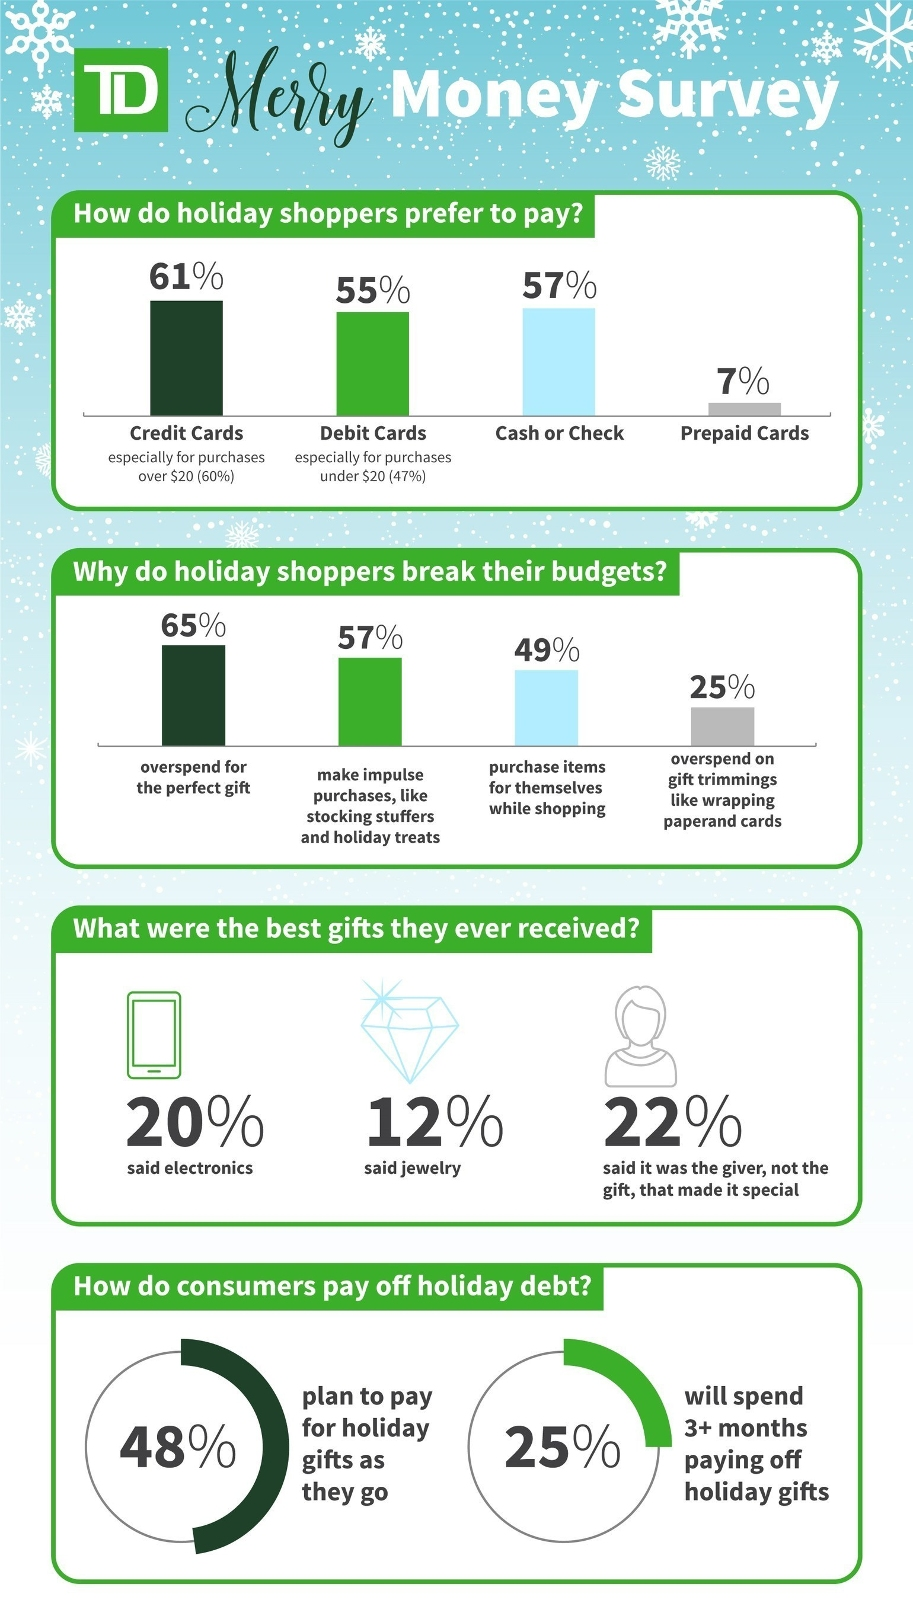 78 Percent Of Consumers Overspend On Holiday Purchases Finds Td